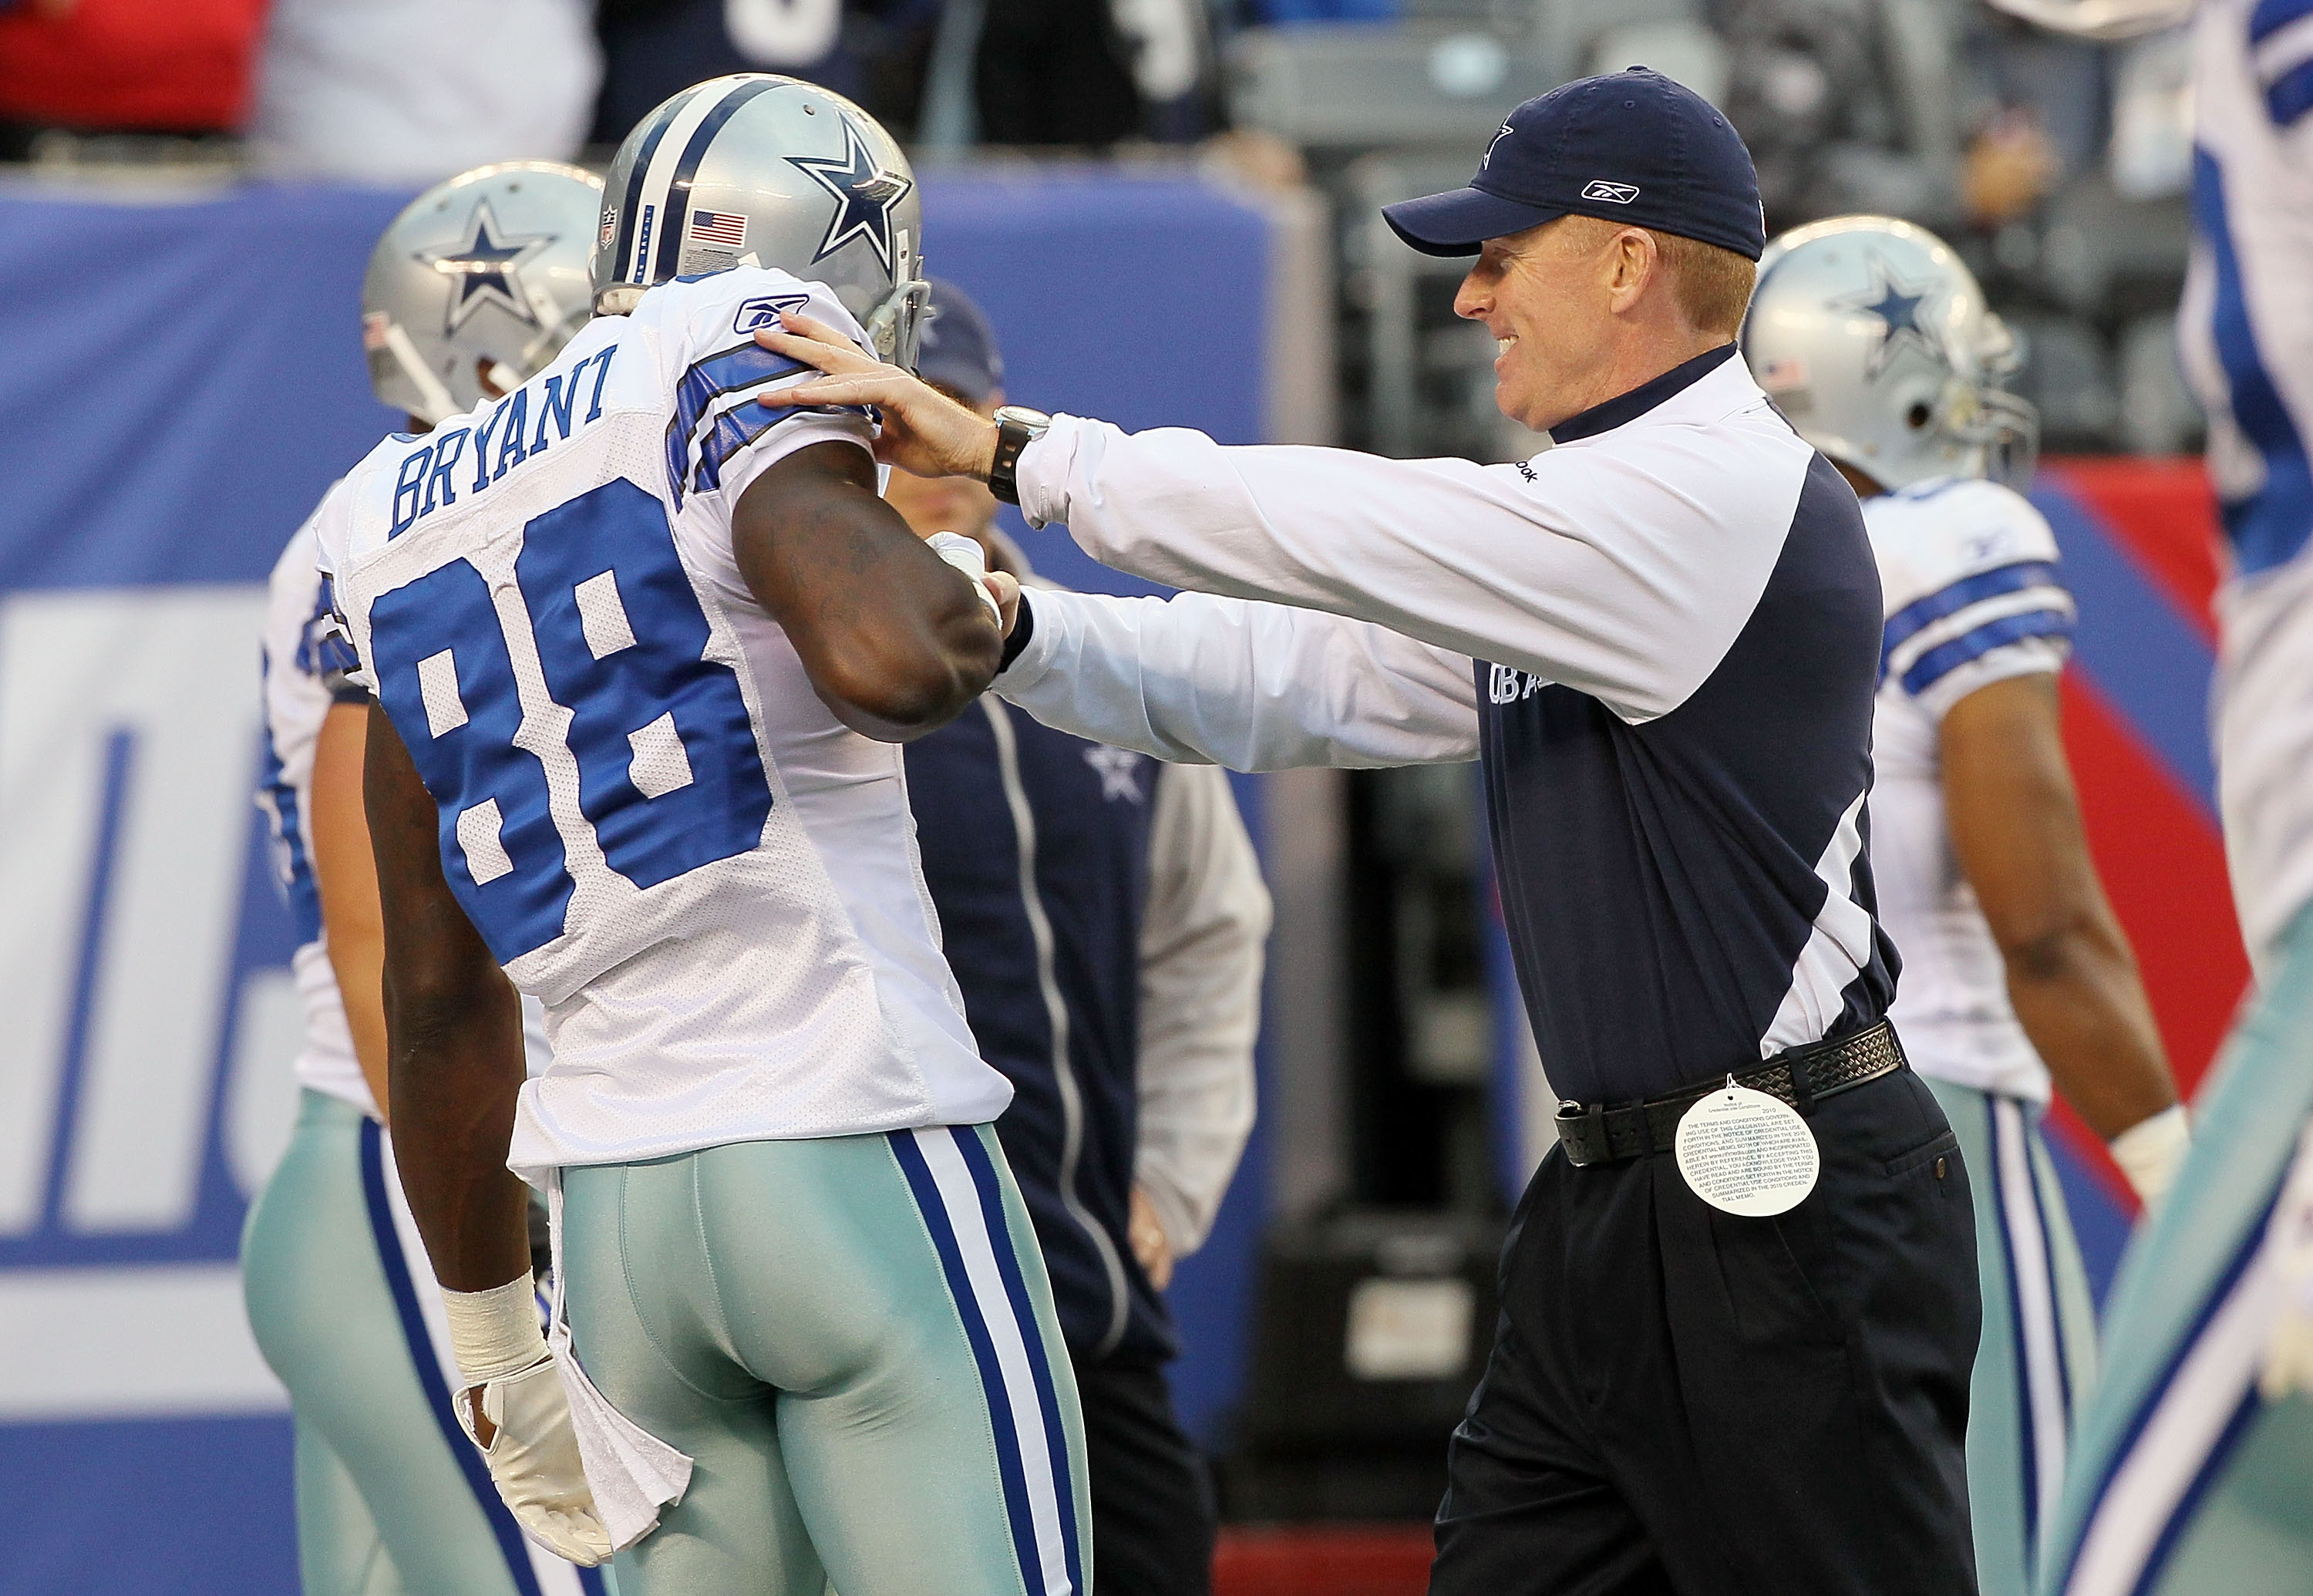 Cowboys Demarcus Lawrence On Snubbing Kid In Giants Jersey